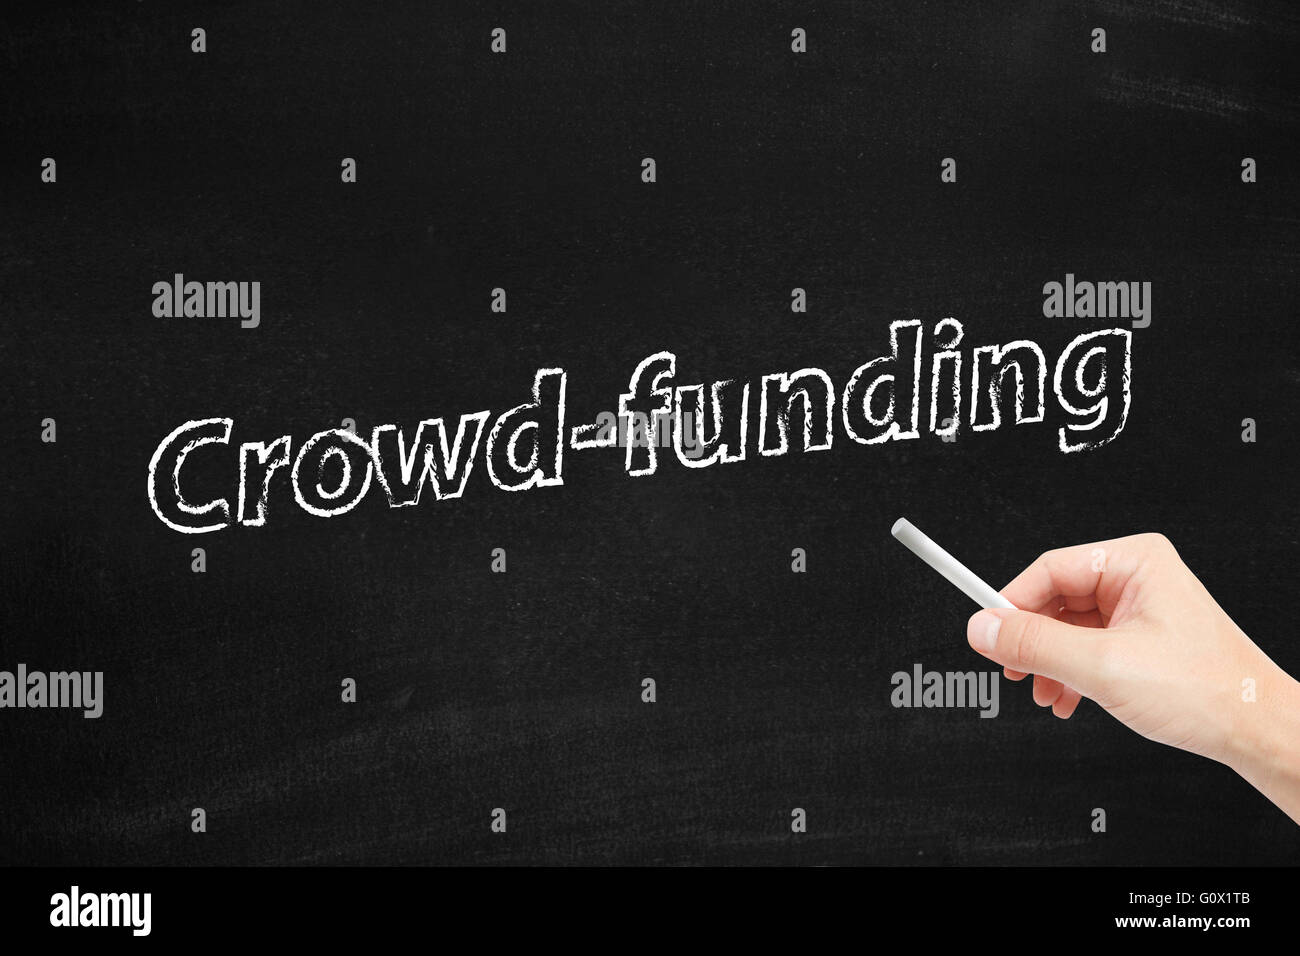 Crowd funding on blackboard - Stock Image